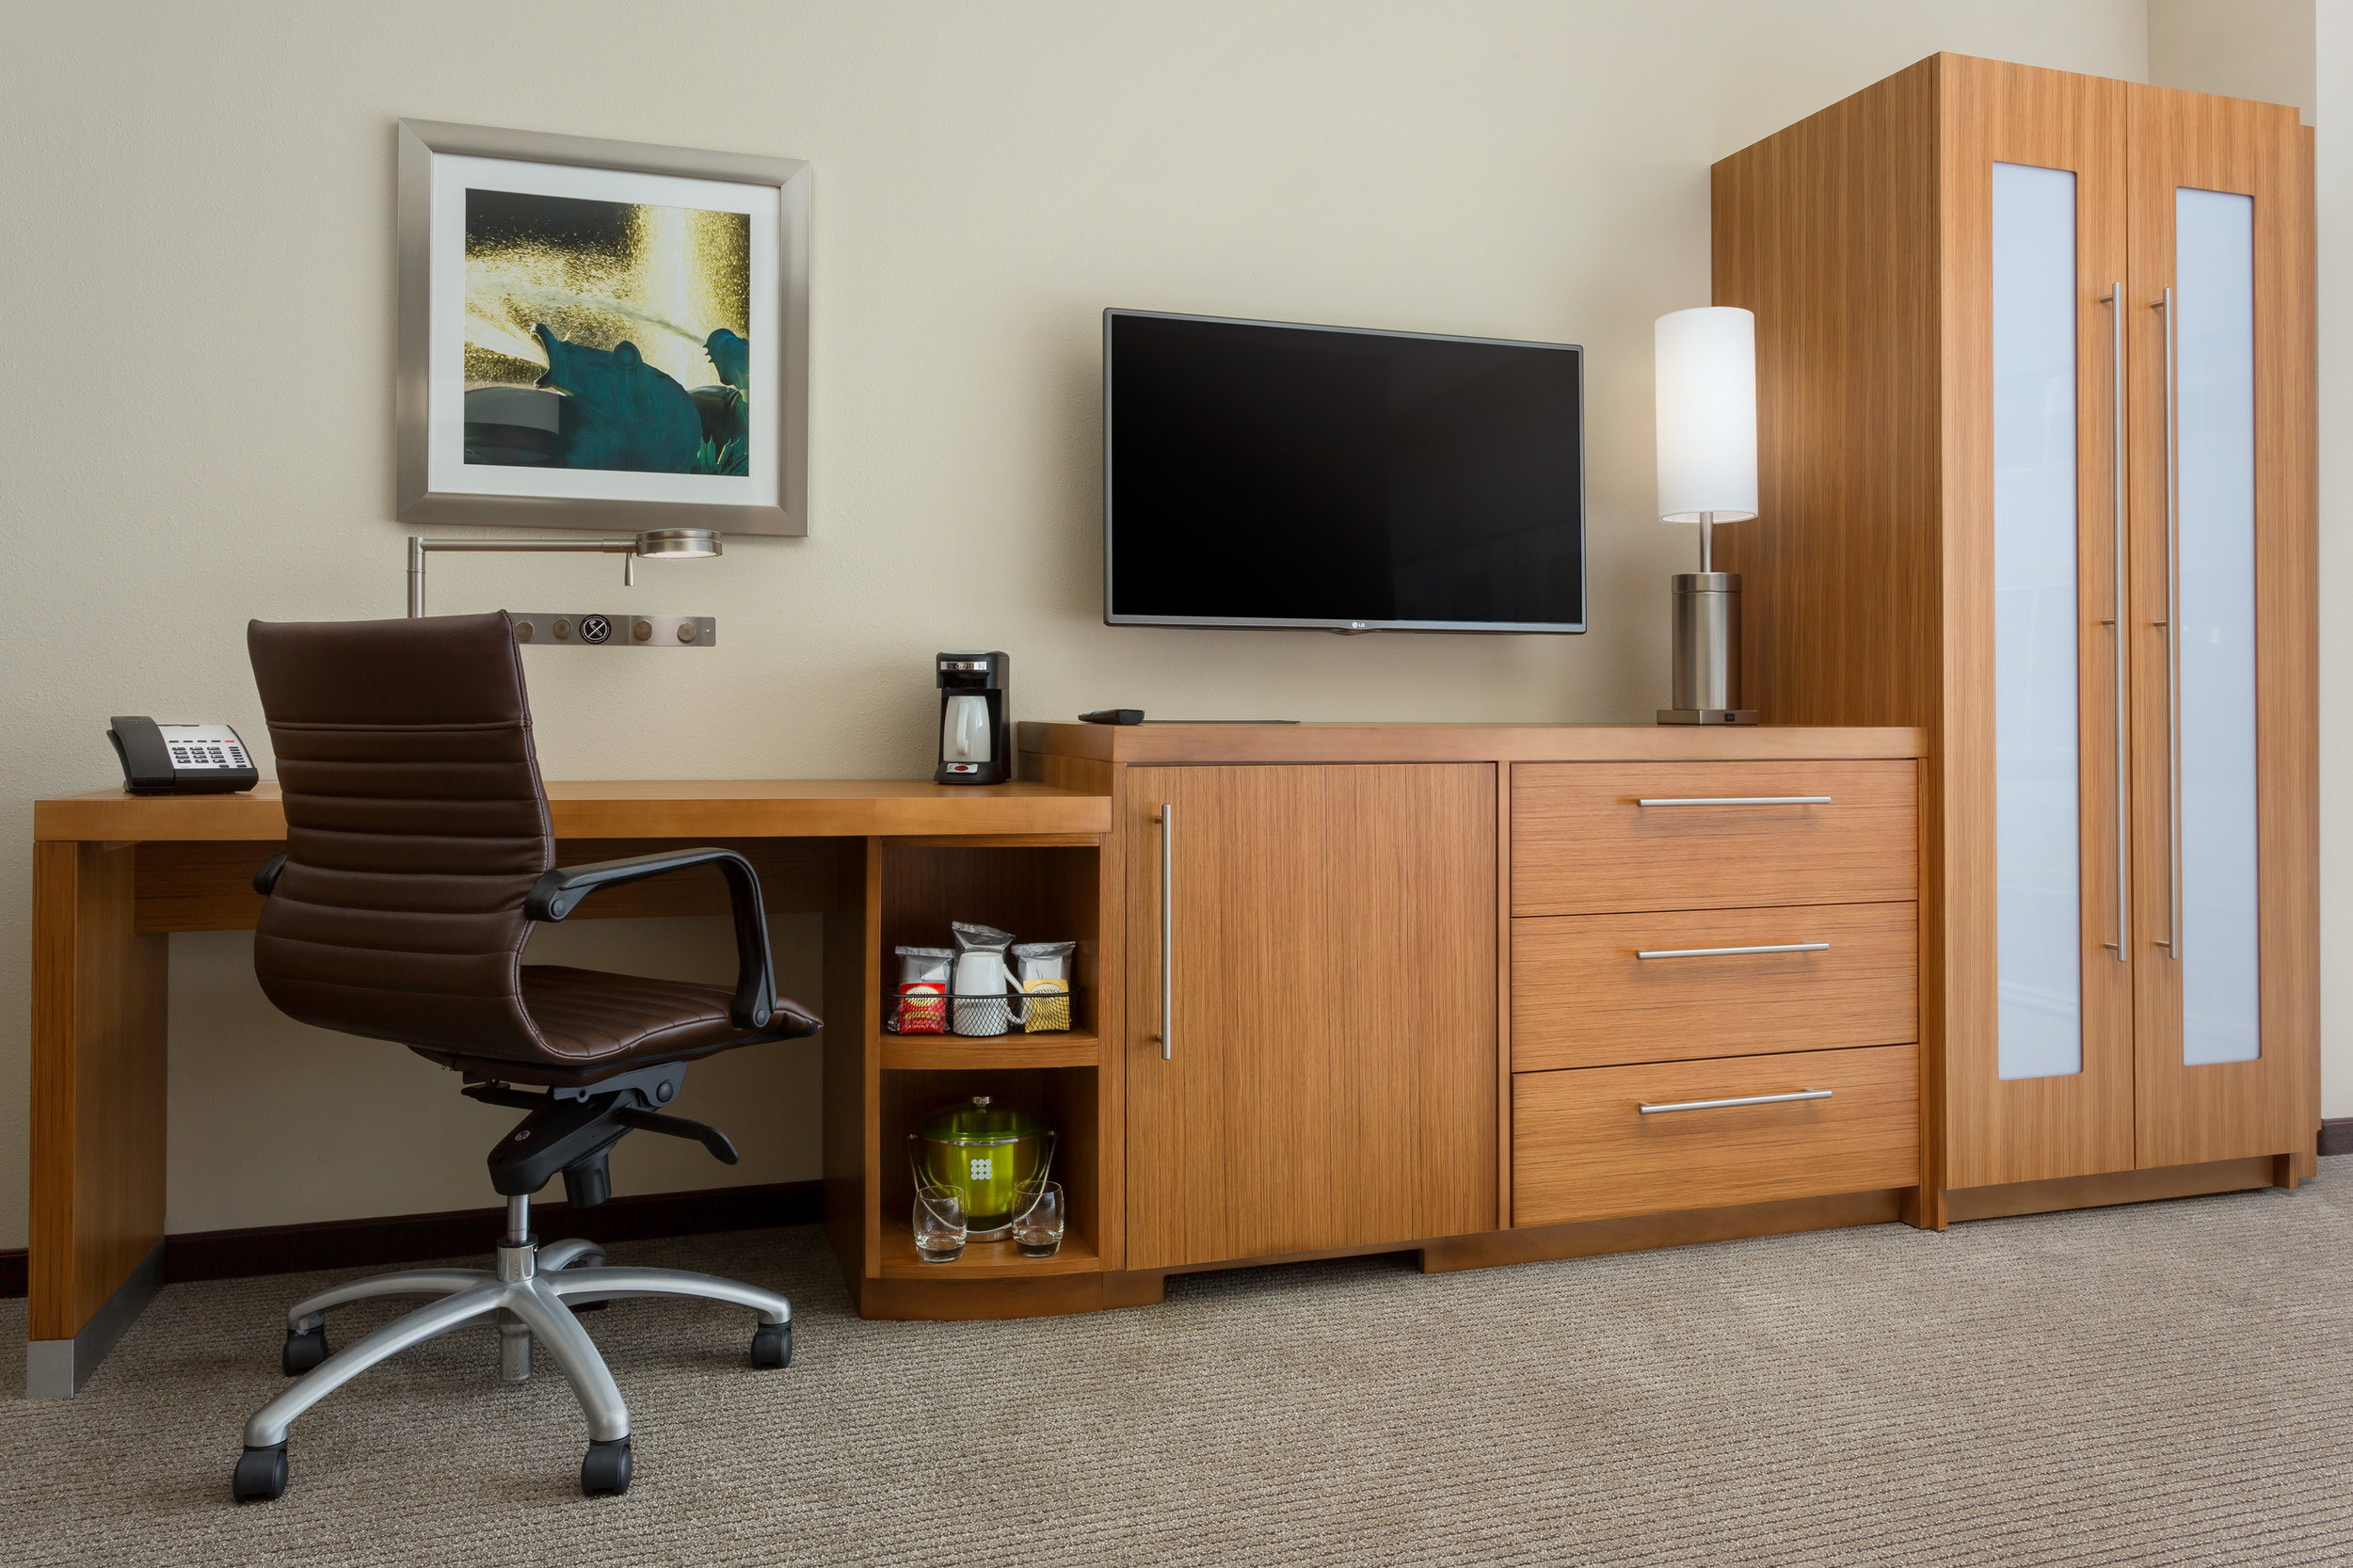 Hyatt Place Chicago Loop-Desk.jpg